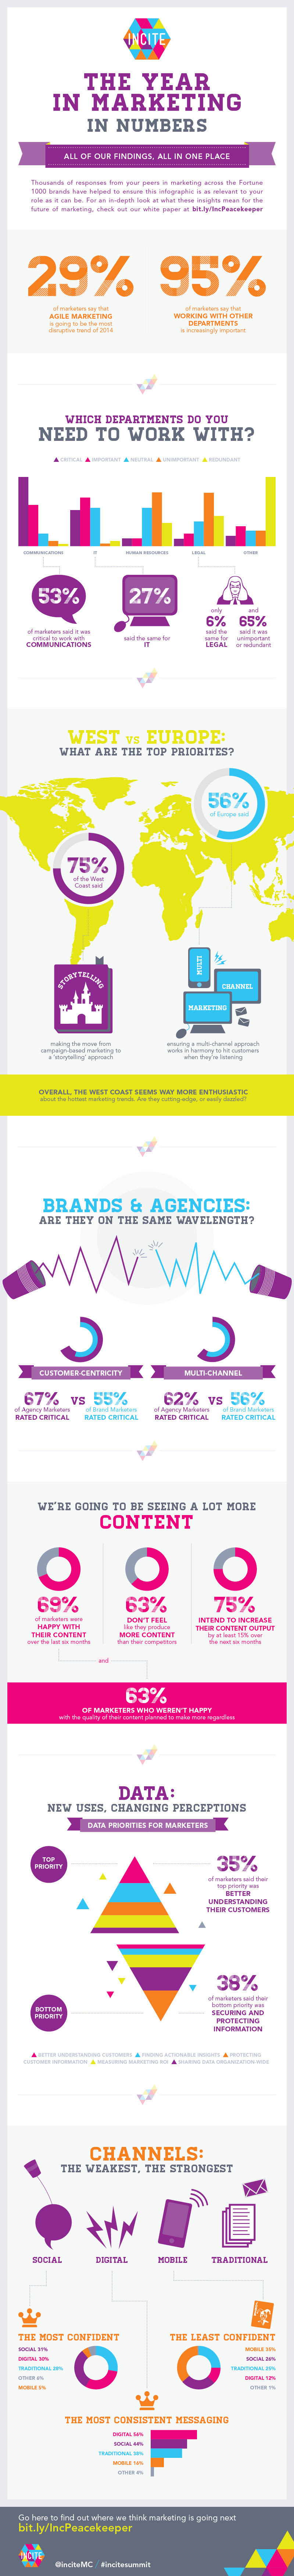 Infographic: The Year in Marketing in Numbers